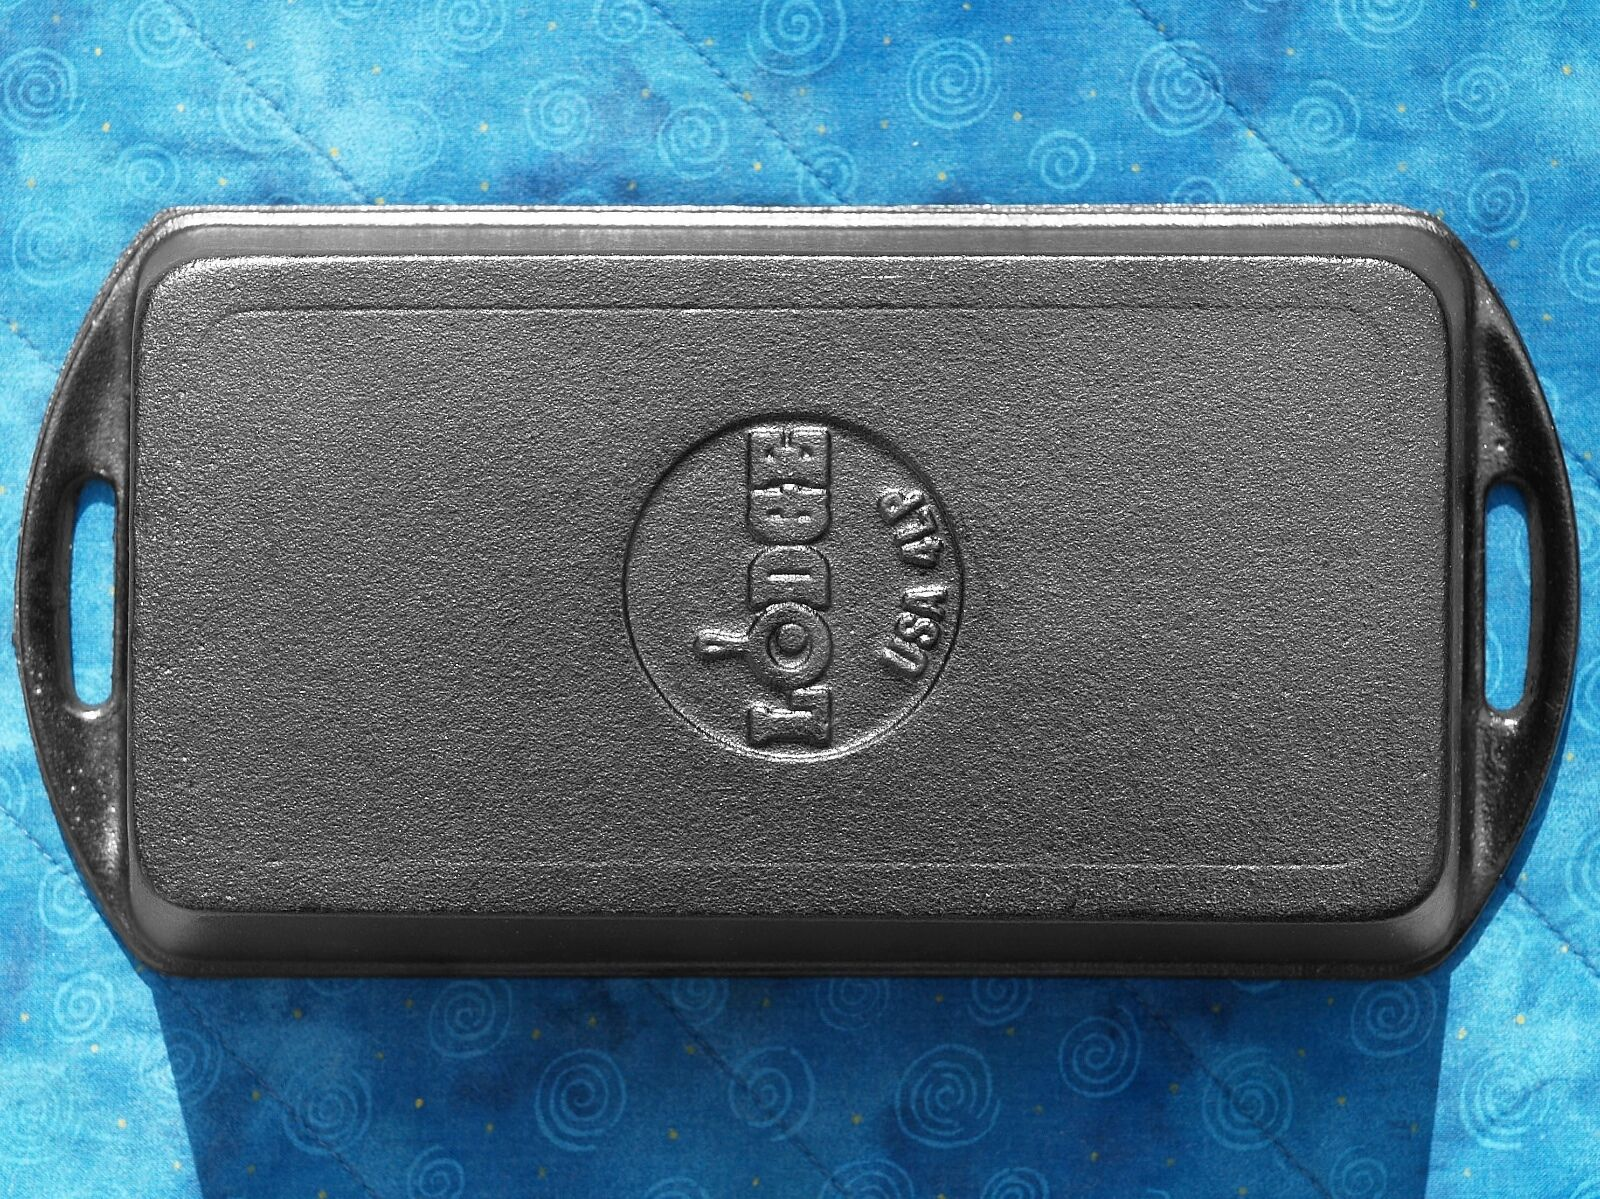 1 Lodge L4LP3 Cast Iron Bread Baking Loaf Pan seasoned FREE SHIPPING meatloaf 4